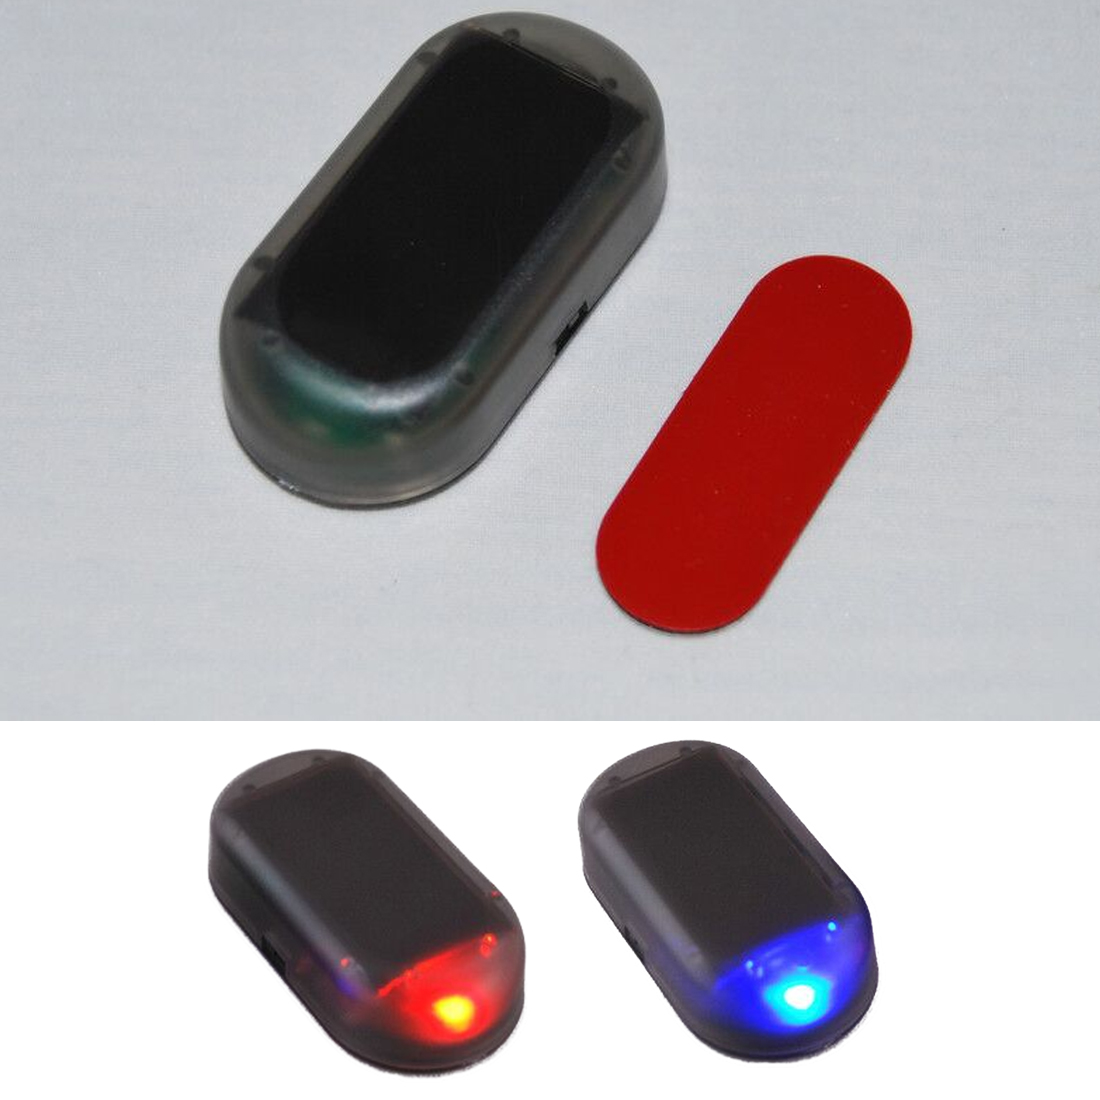 12v BLUE Flashing Dummy Fake Car Alarm Dash Mount LED Light FAST FREE SHIP pm